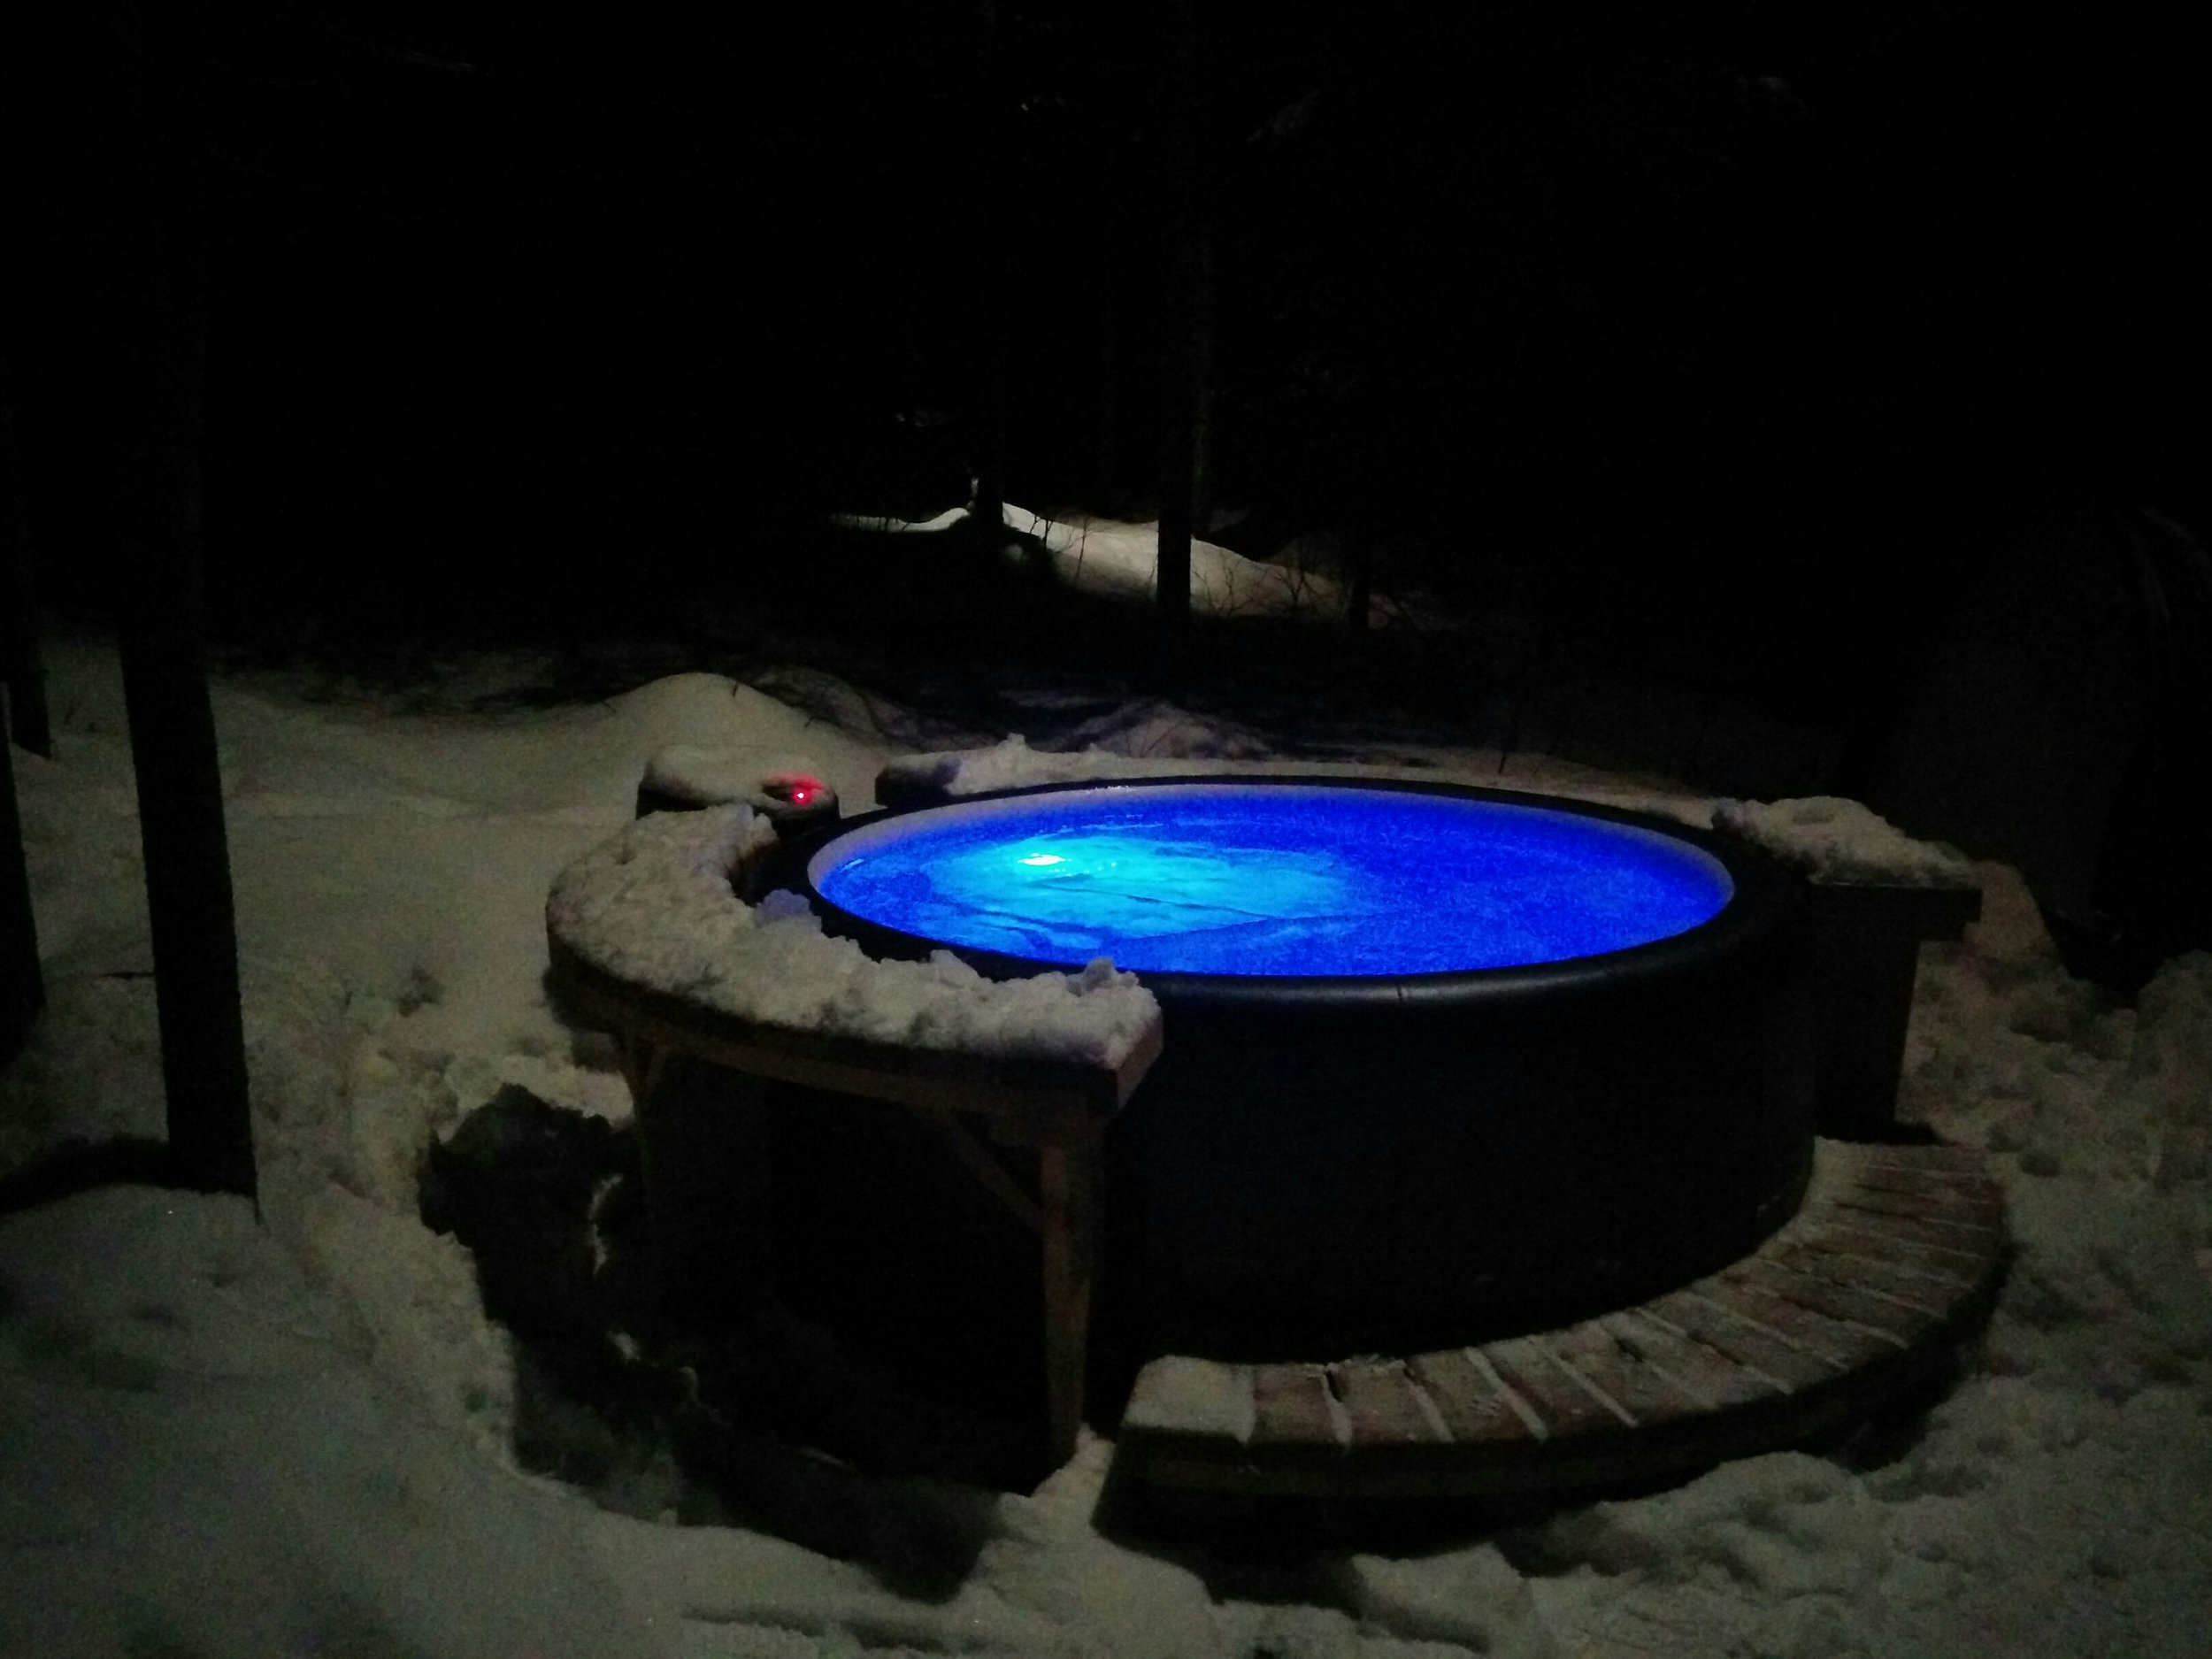 The Blue Glow of a Winter Hot Tub